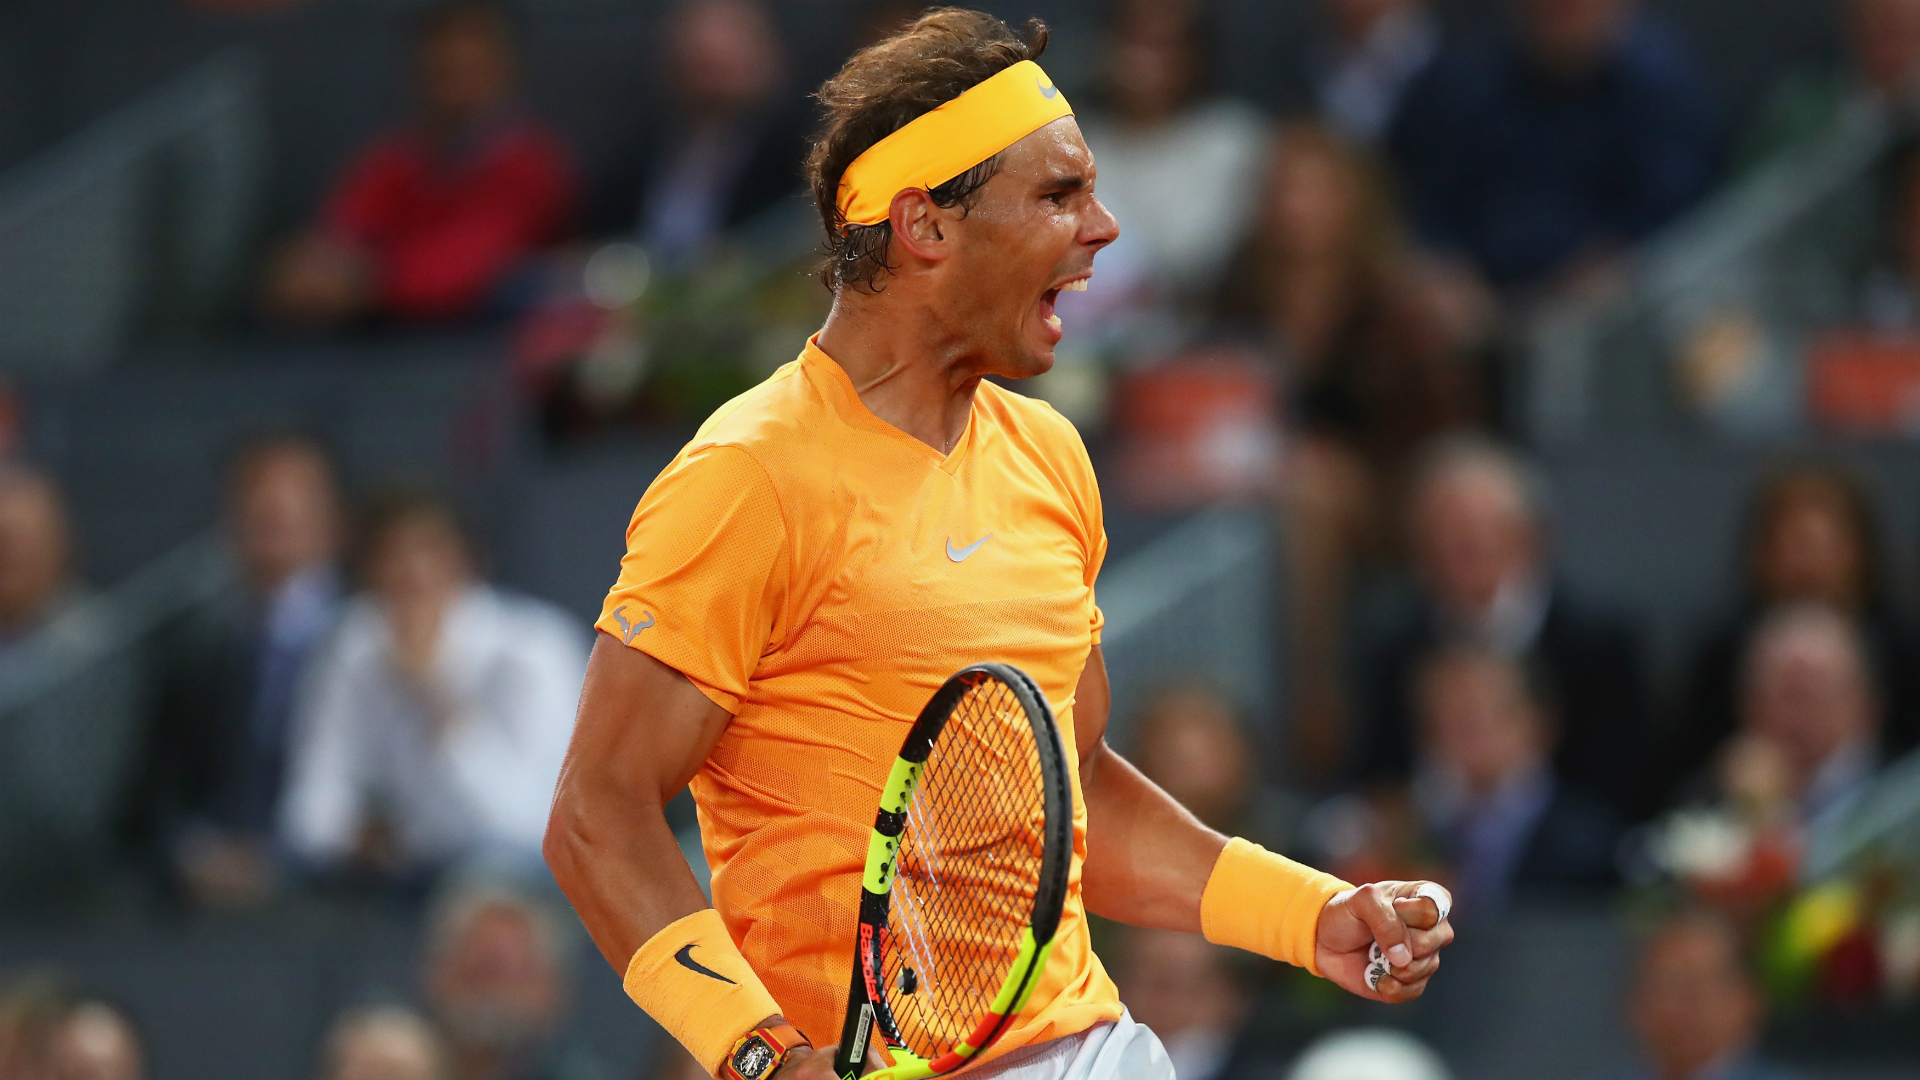 Rafael Nadal reacts to getting back to winning ways in Rome